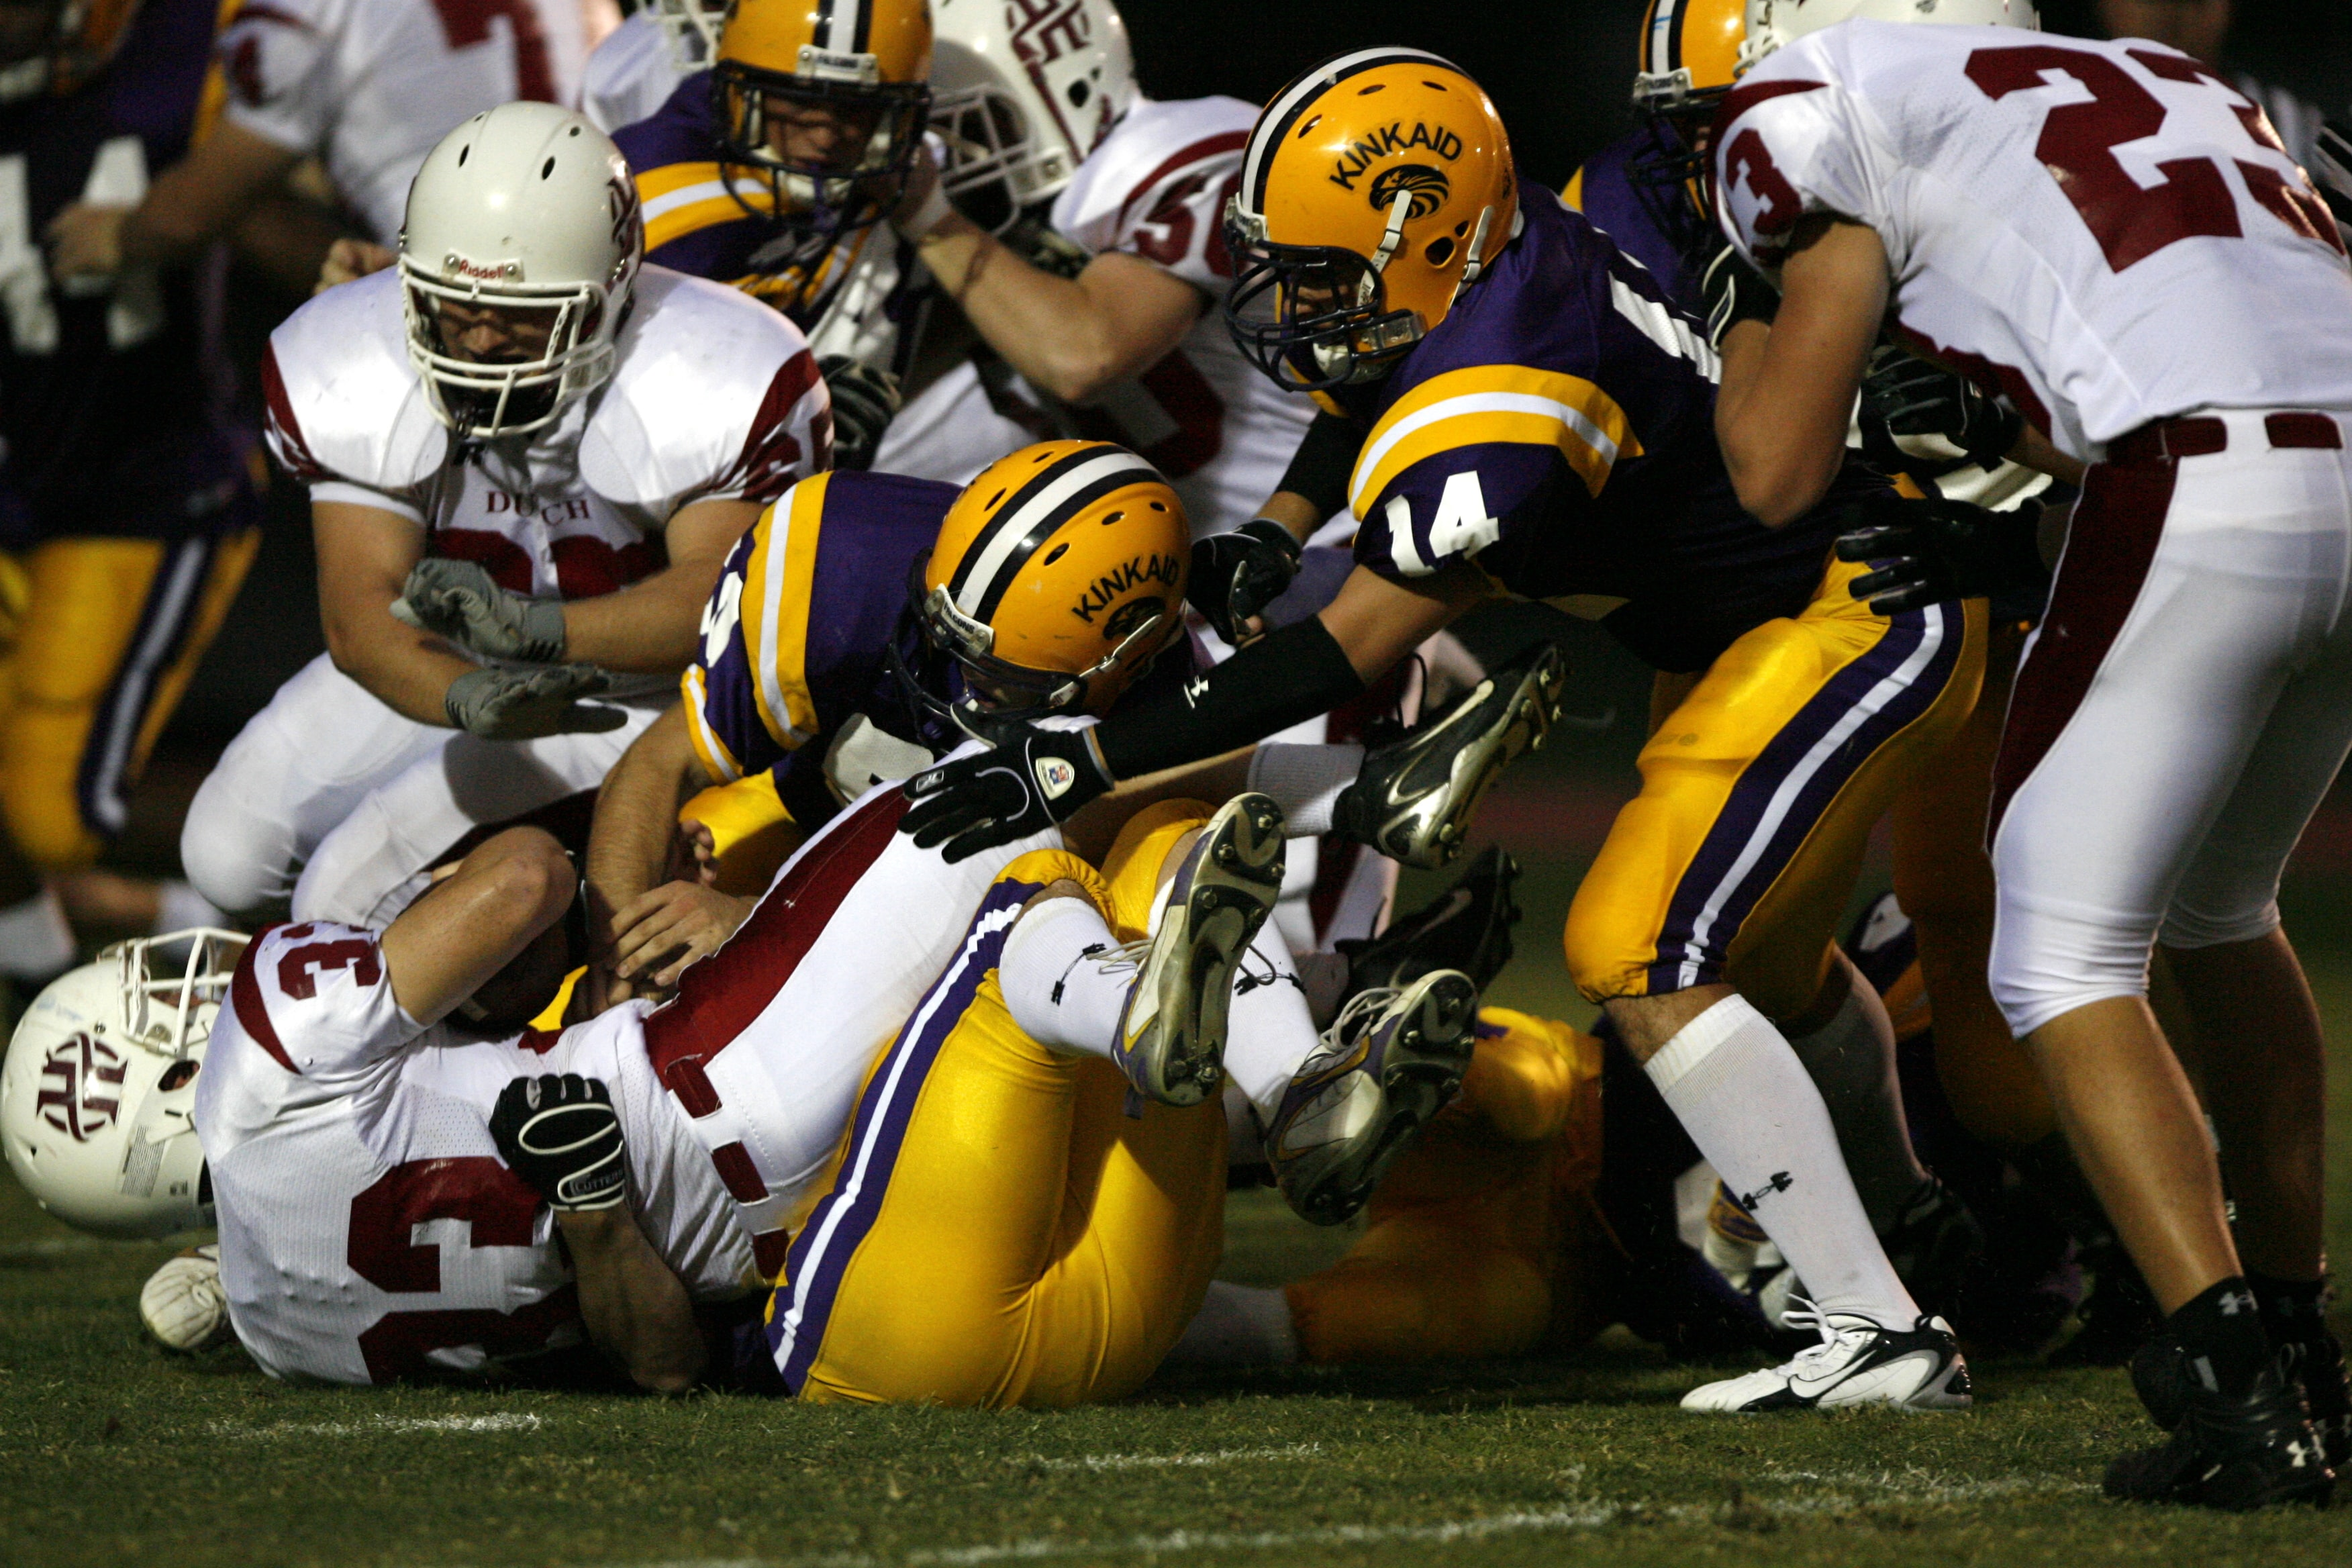 football players tumbles on each other